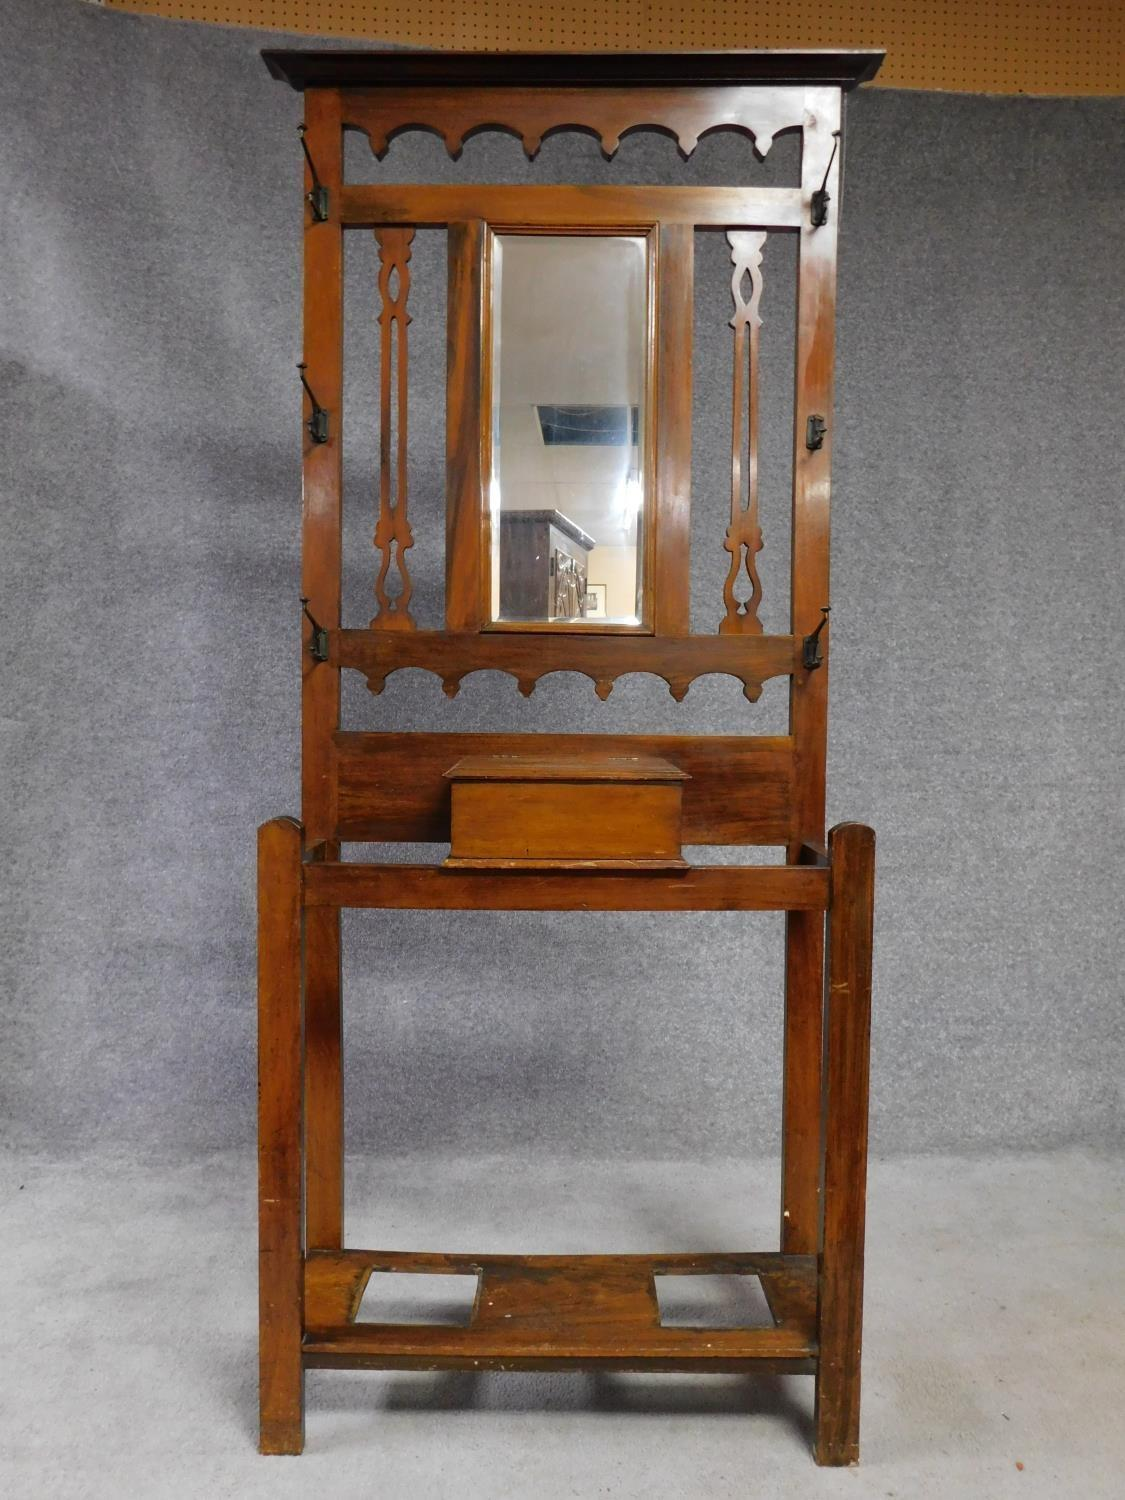 A 19th century Art Nouveau walnut hallstand with central mirror above glove compartment with